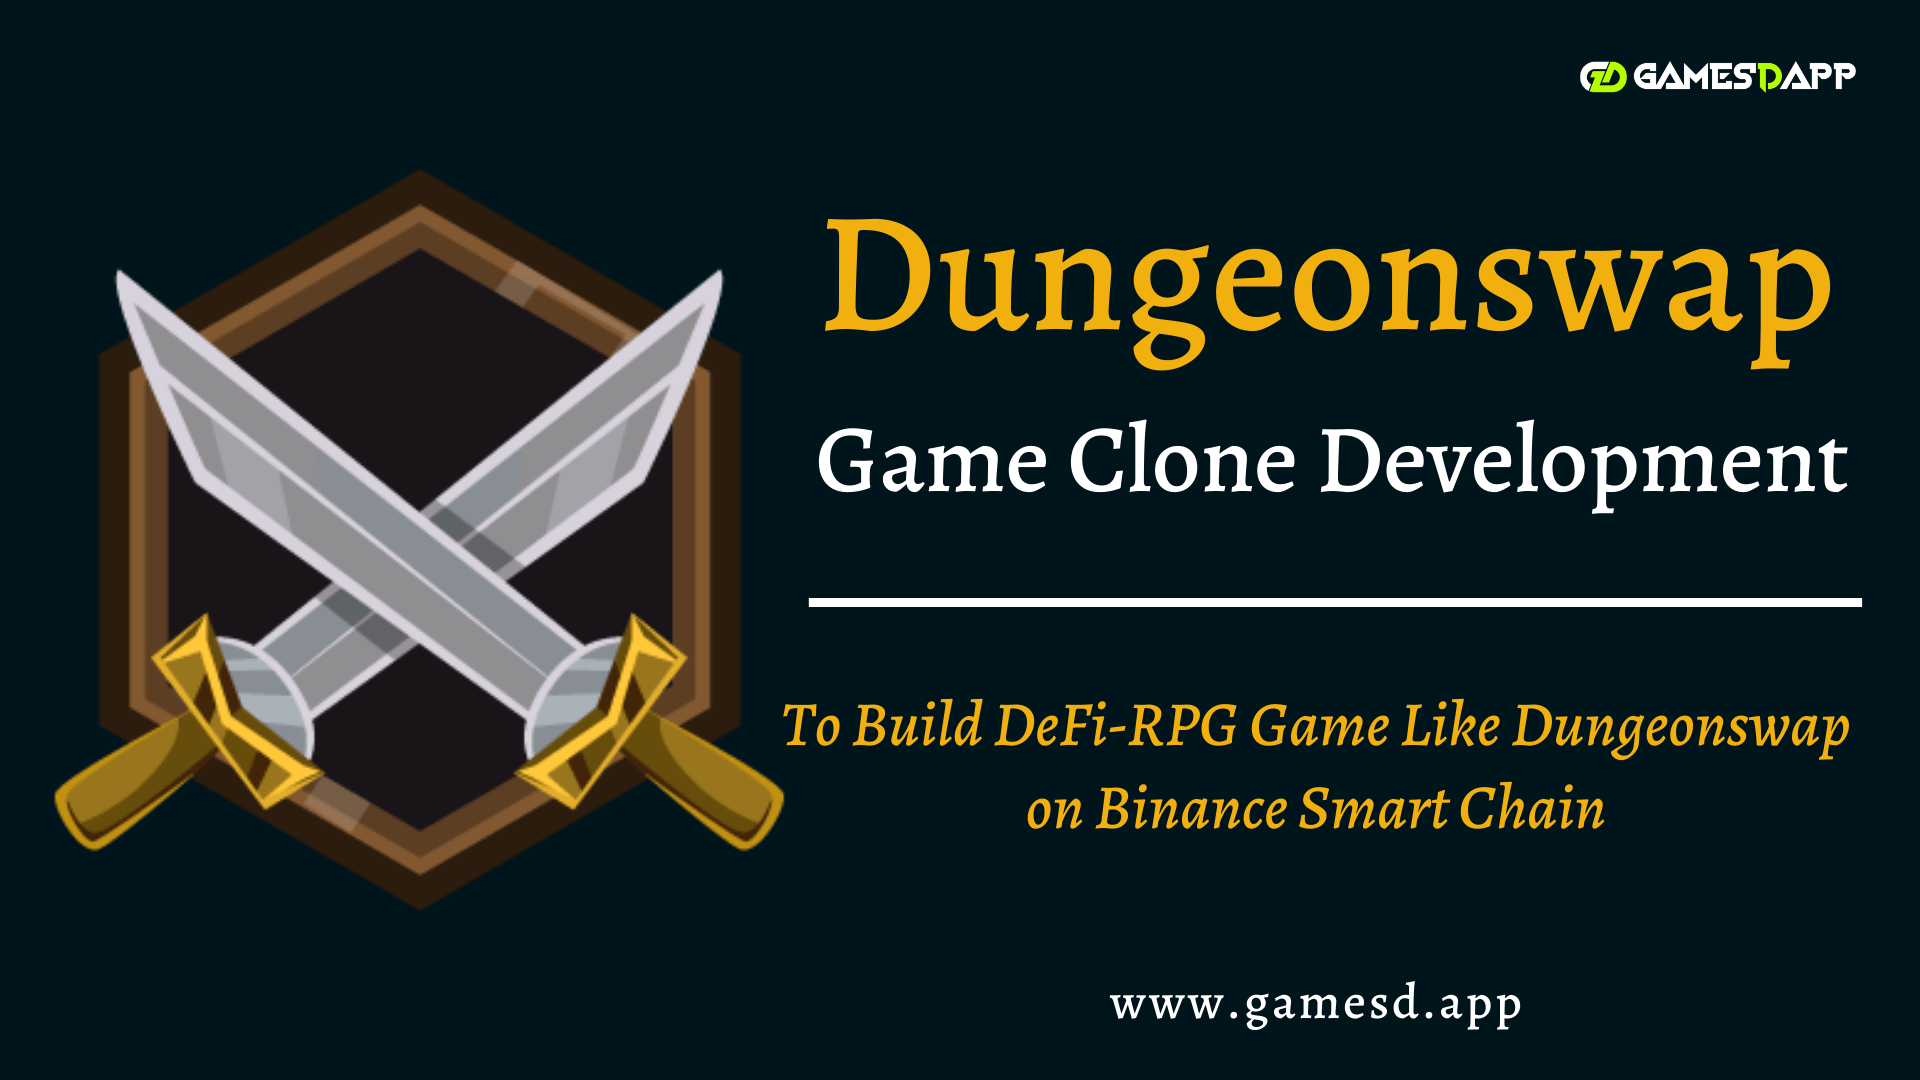 DungeonSwap Game Clone  - To Build DeFi-RPG Game Like DungeonSwap on Binance Smart Chain